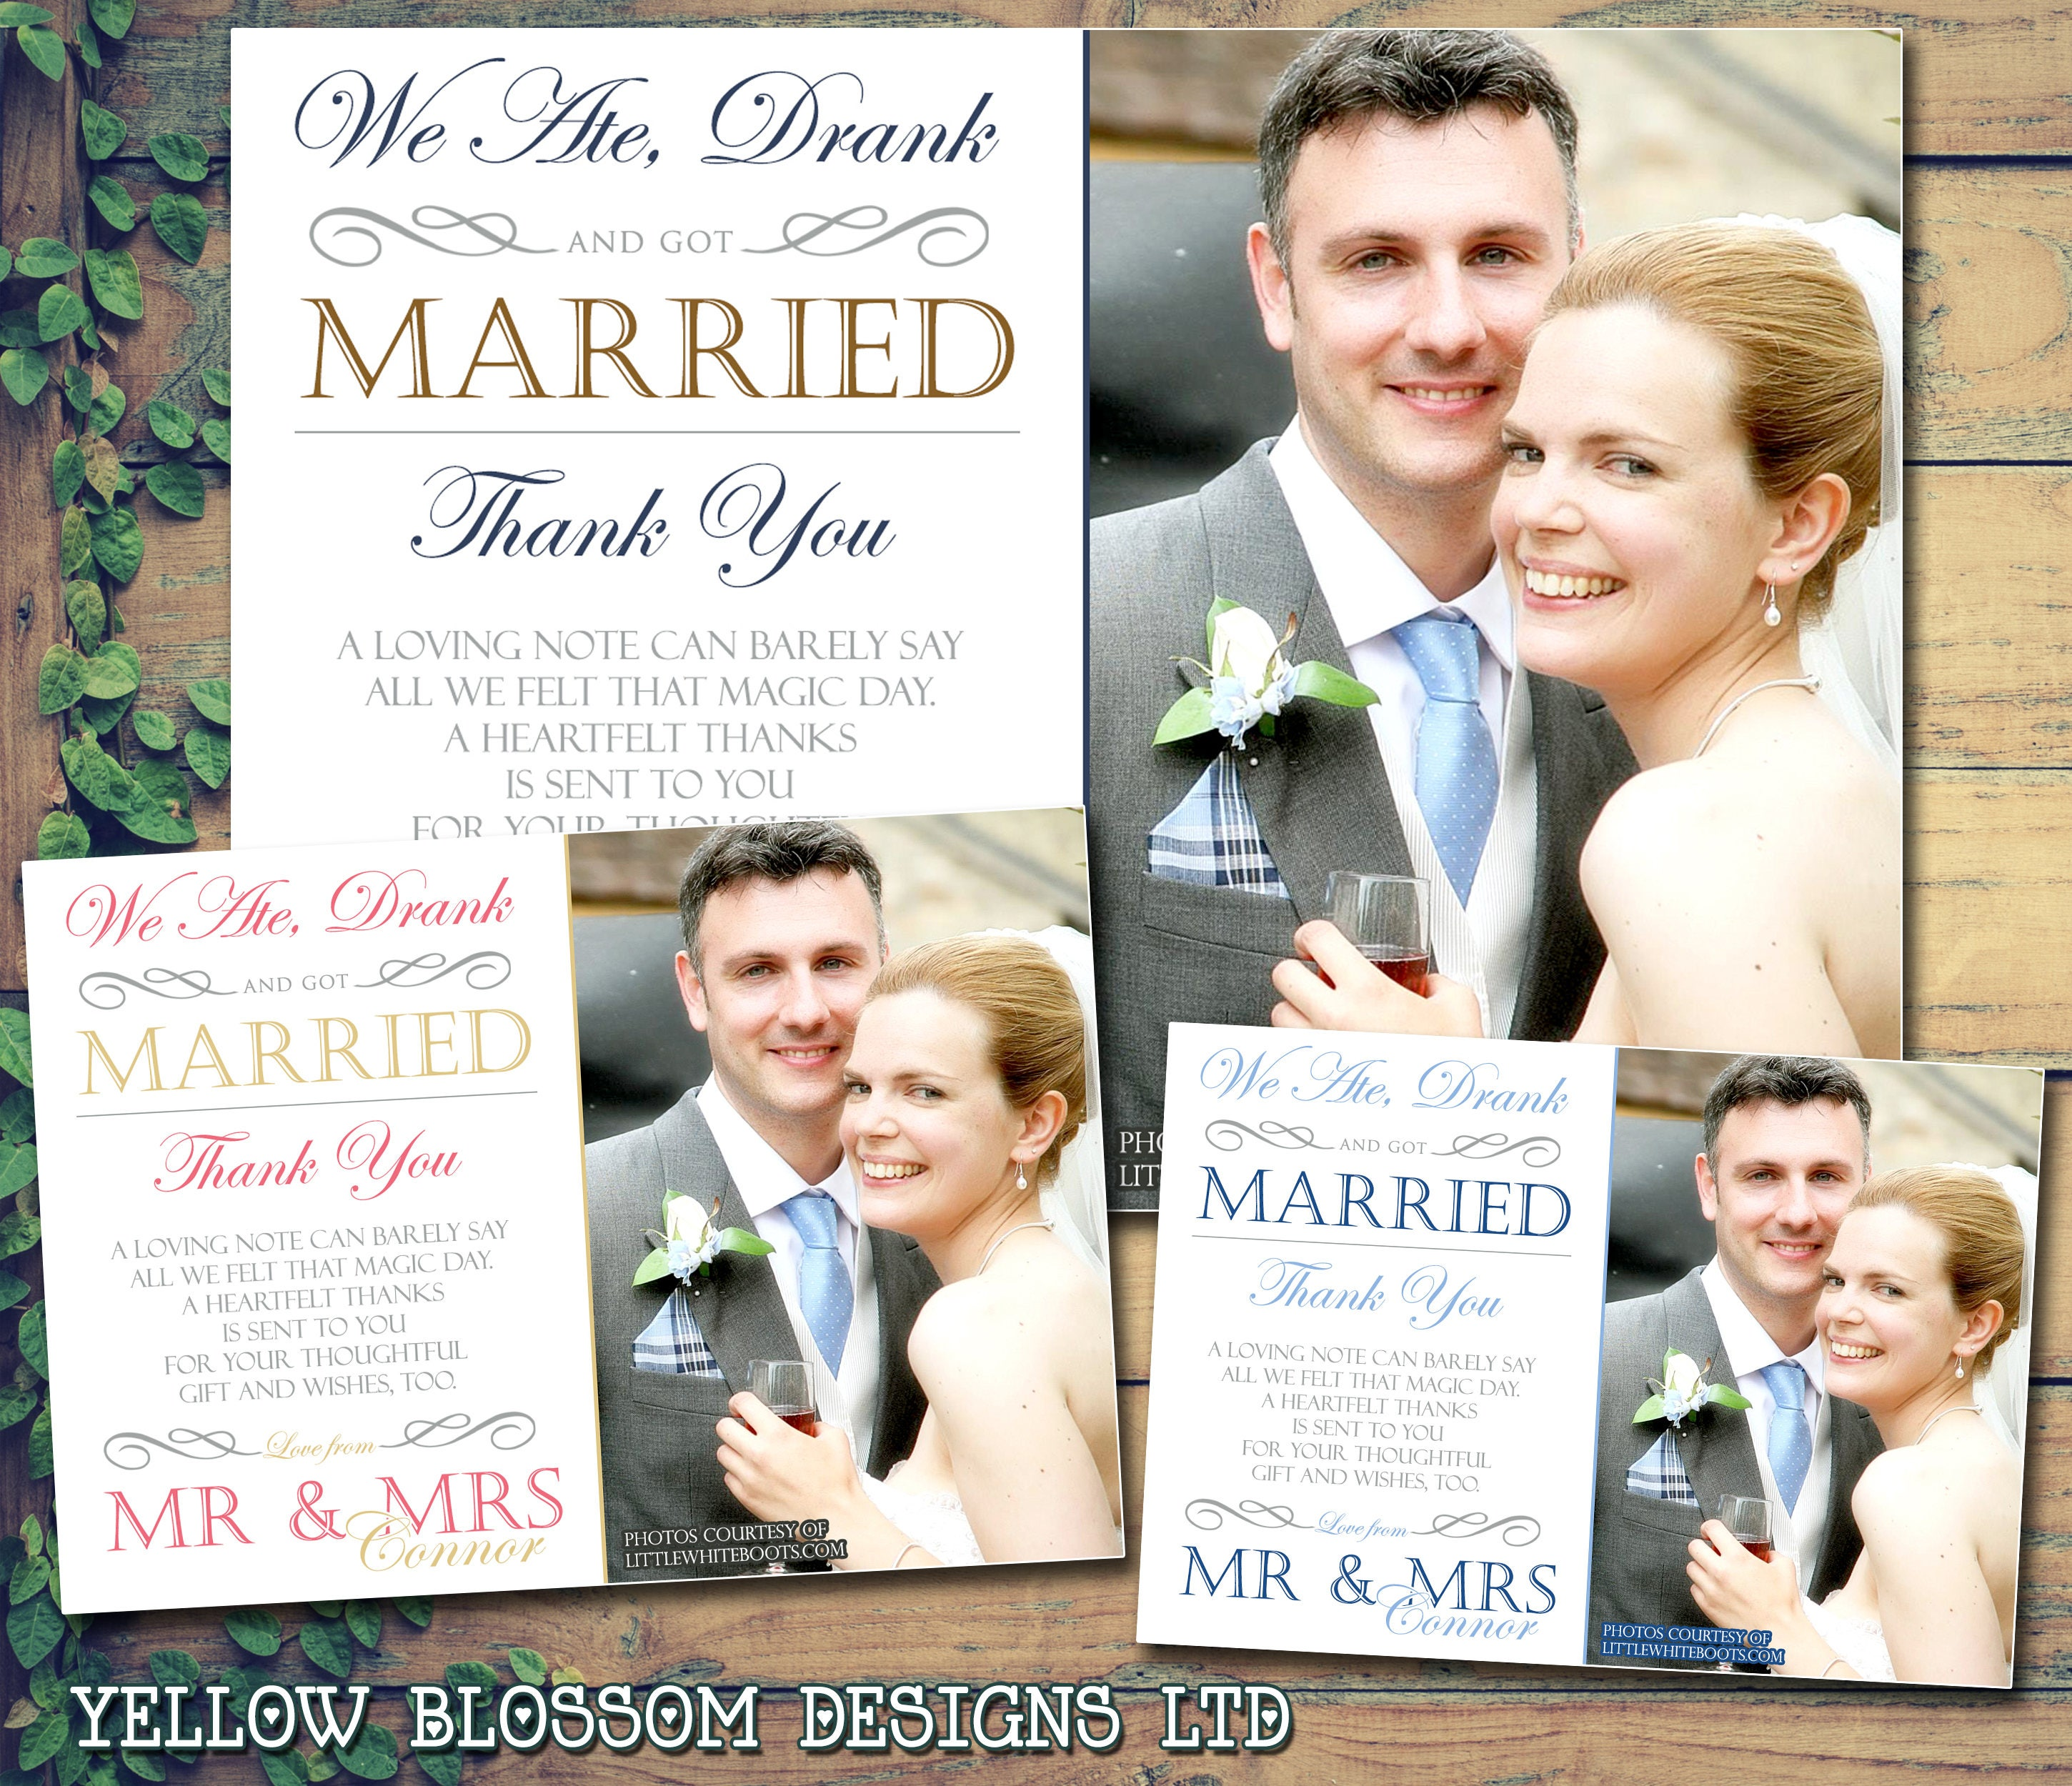 10 Wedding Thank You Cards Personalised Printed Photo Mr Mrs Folded Blank Flat Postcards Eat